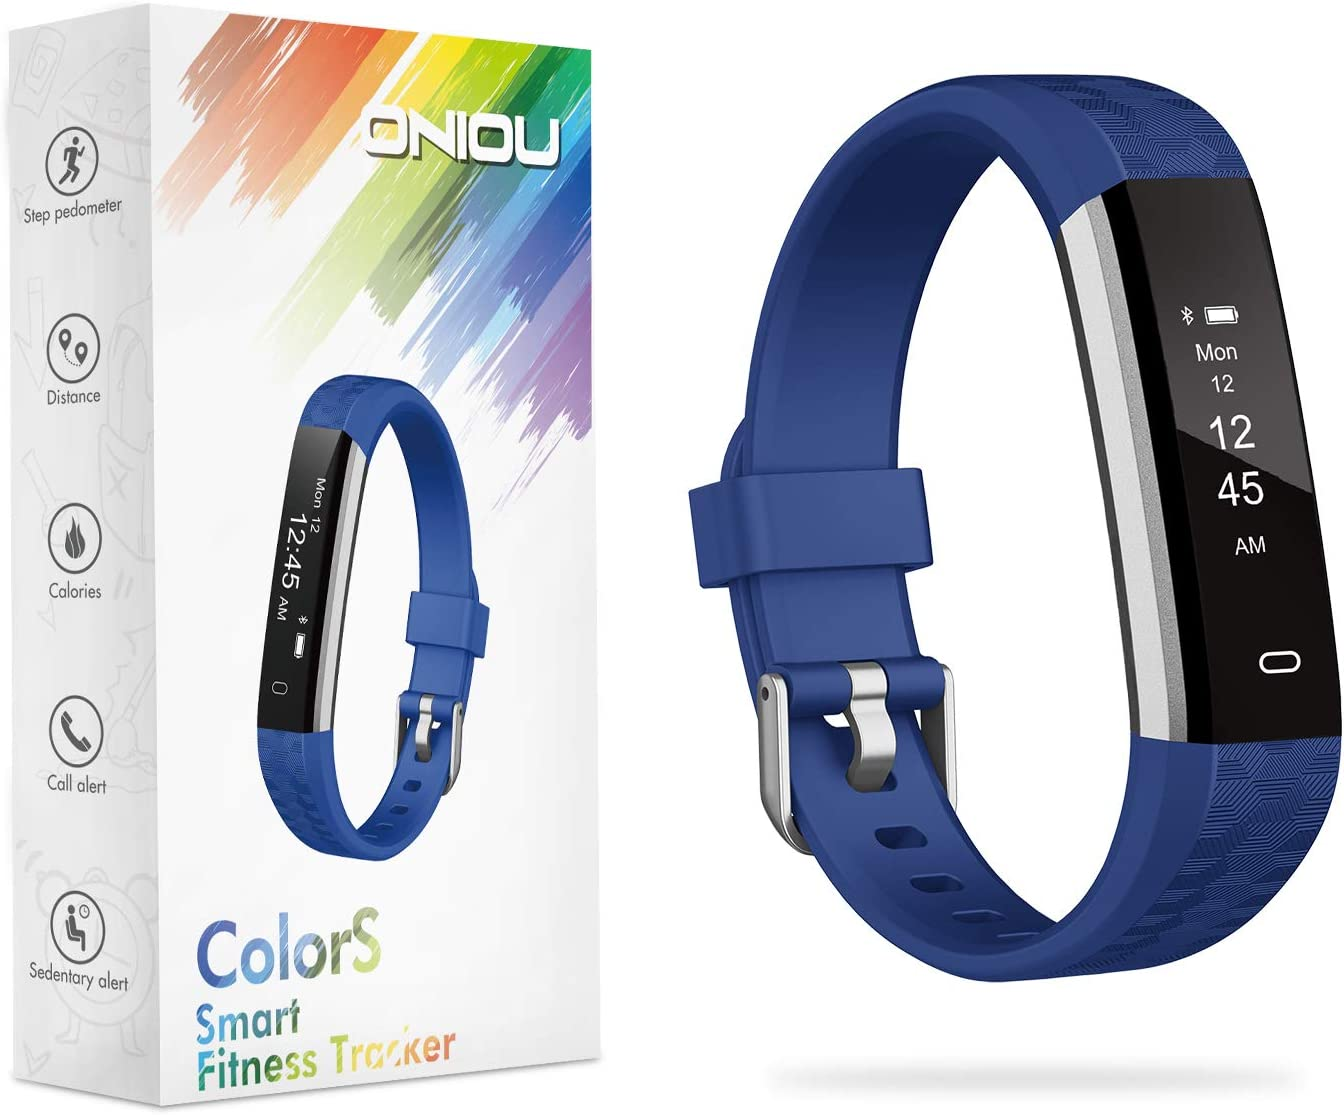 ONIOU Kids Fitness Tracker Watch, IP67 Waterproof Activity Tracker with Sleep Monitor, Alarm Clock, Sedentary Reminder, Pedometer Watch with Calorie Counter, Ideal Gifts for Children